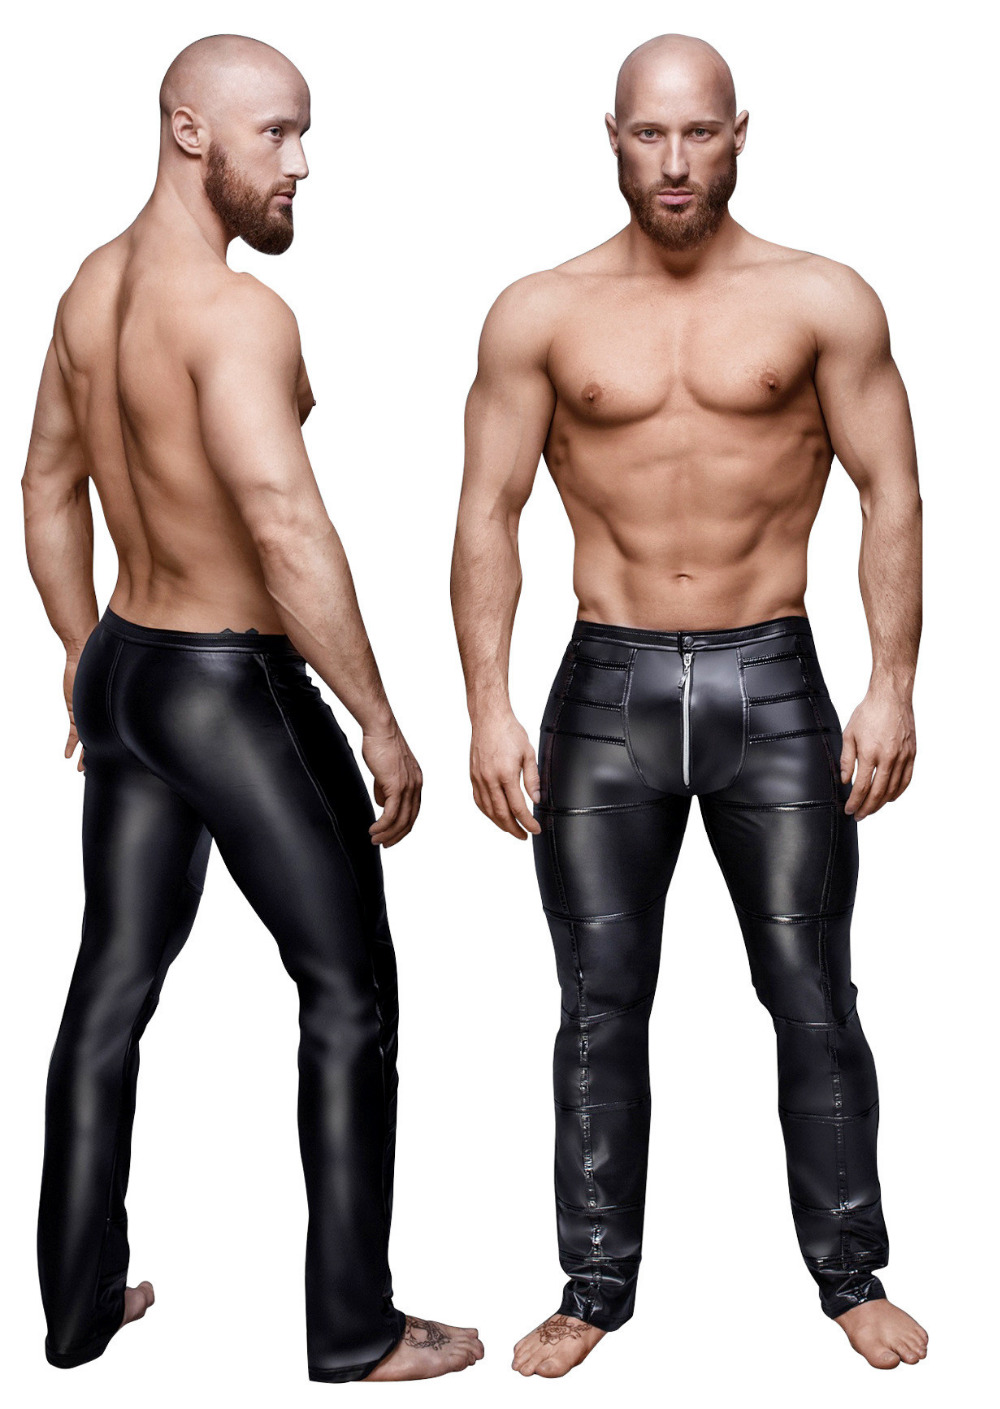 New Mens Skinny Faux PU Leather Pants Shiny Black Pants Trousers Nightclub fashion Stage Costumes for Singers Dancer Male